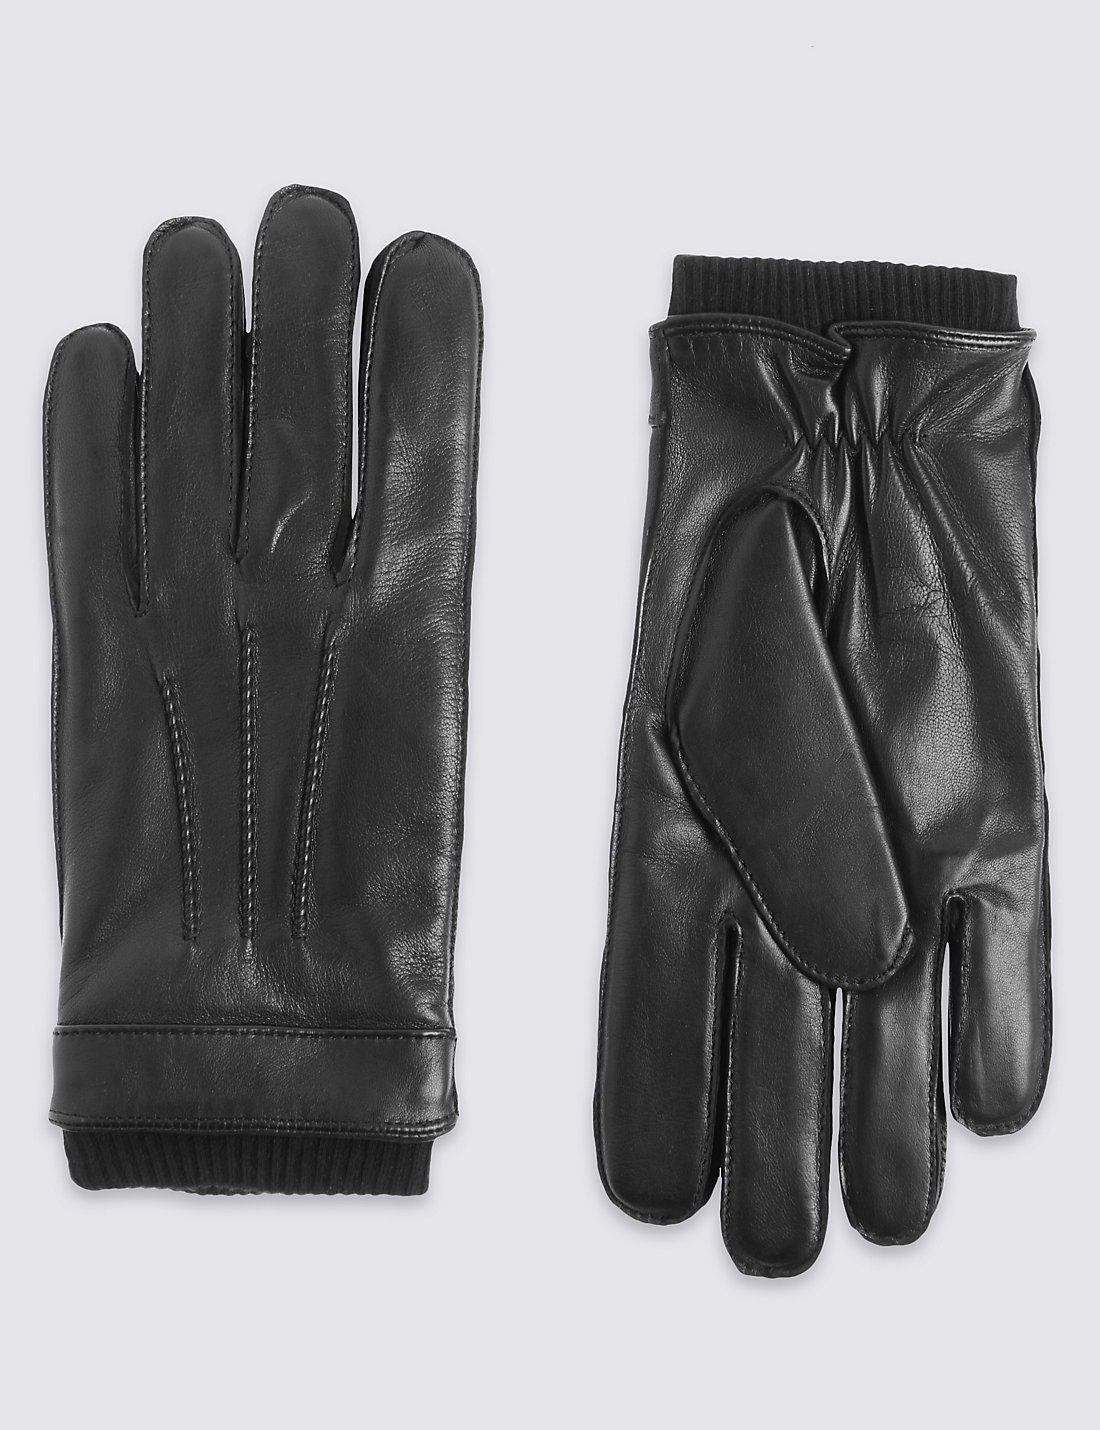 Mens leather gloves ireland - Leather Thinsulate Trade Gloves With Knitted Cuff